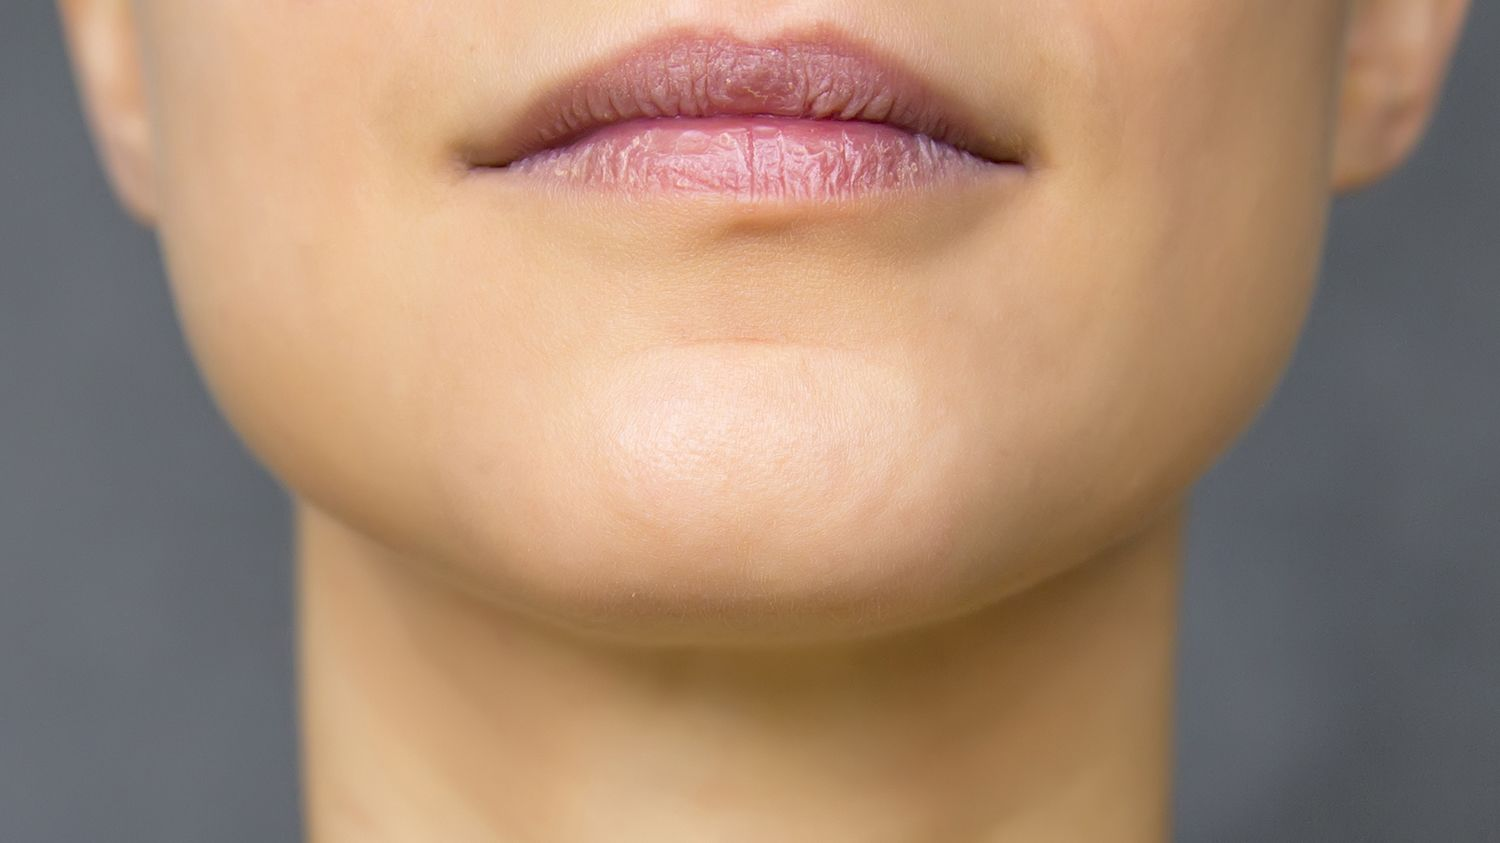 7 Surprising Facts About the Chin | Mental Floss